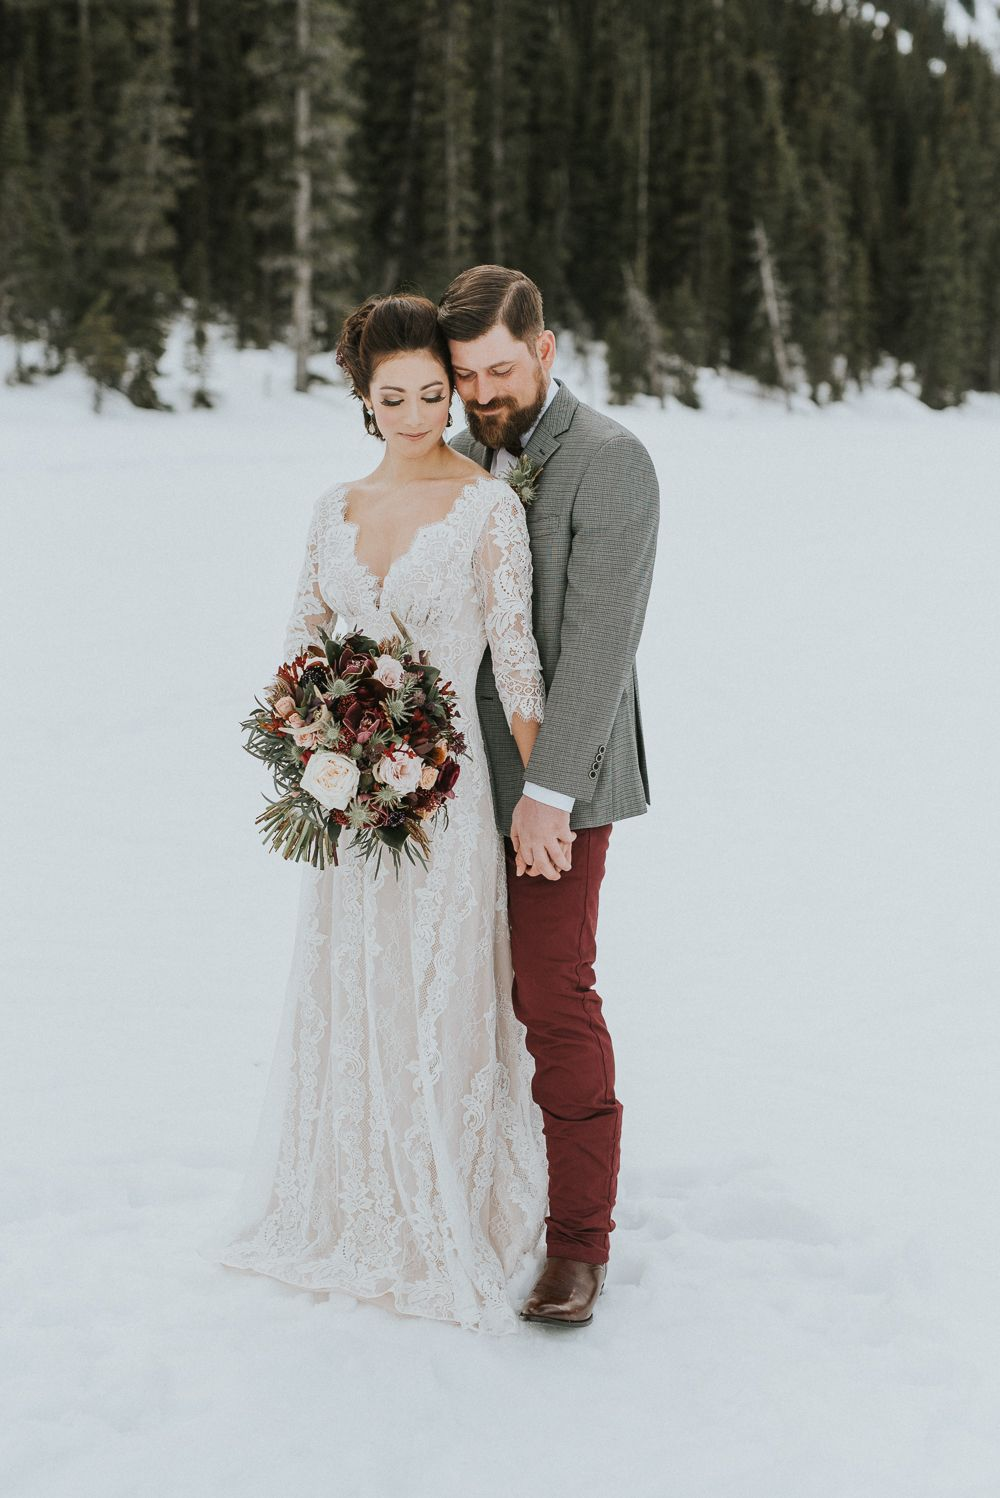 Boda de invierno ideas para bodas pinterest lakes